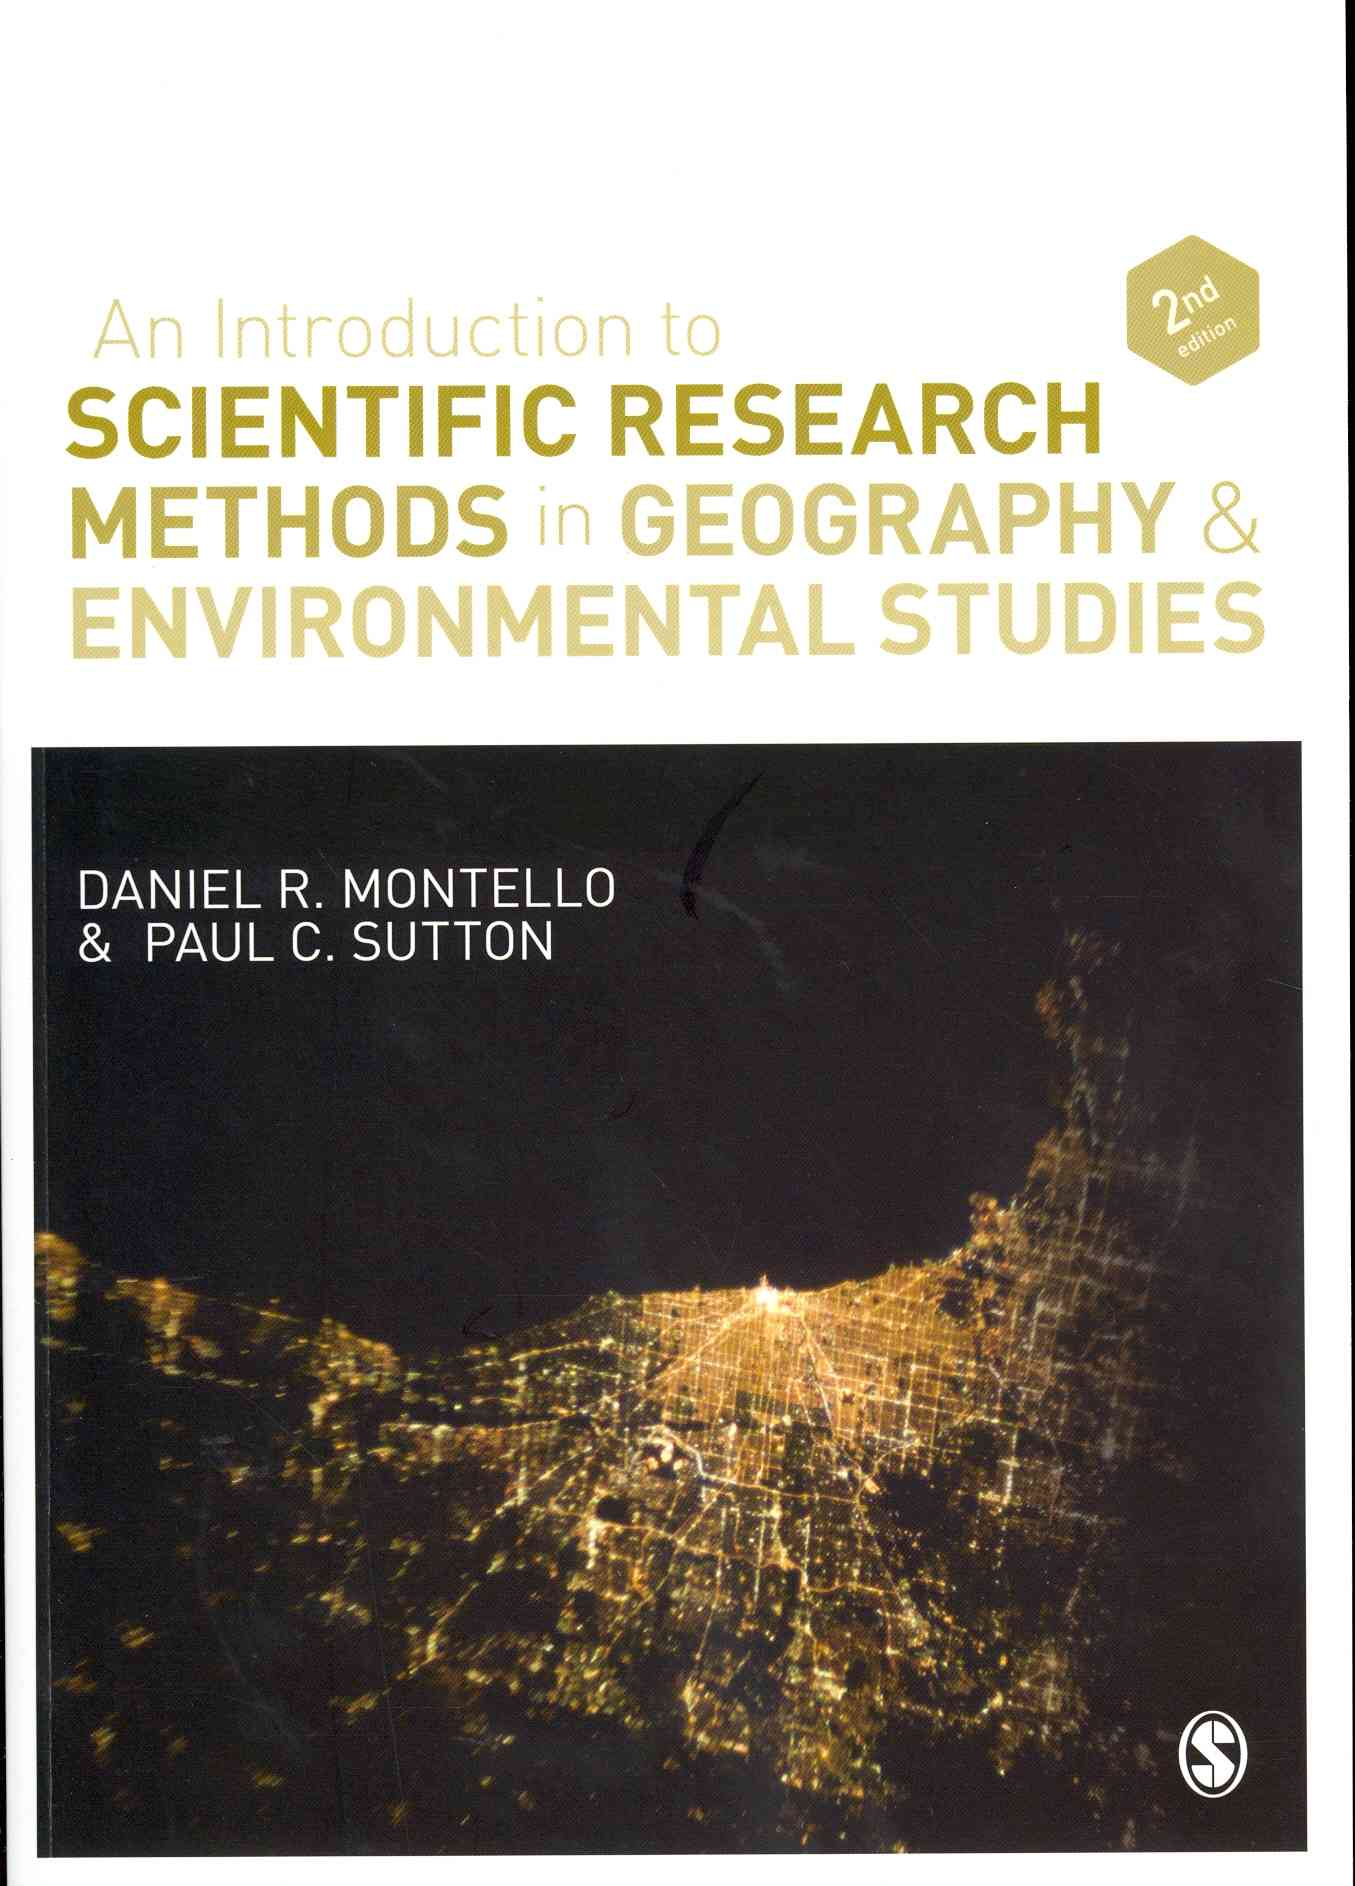 An Introduction to Scientific Research Methods in Geography and Environmental Studies By Montello, Daniel R./ Sutton, Paul